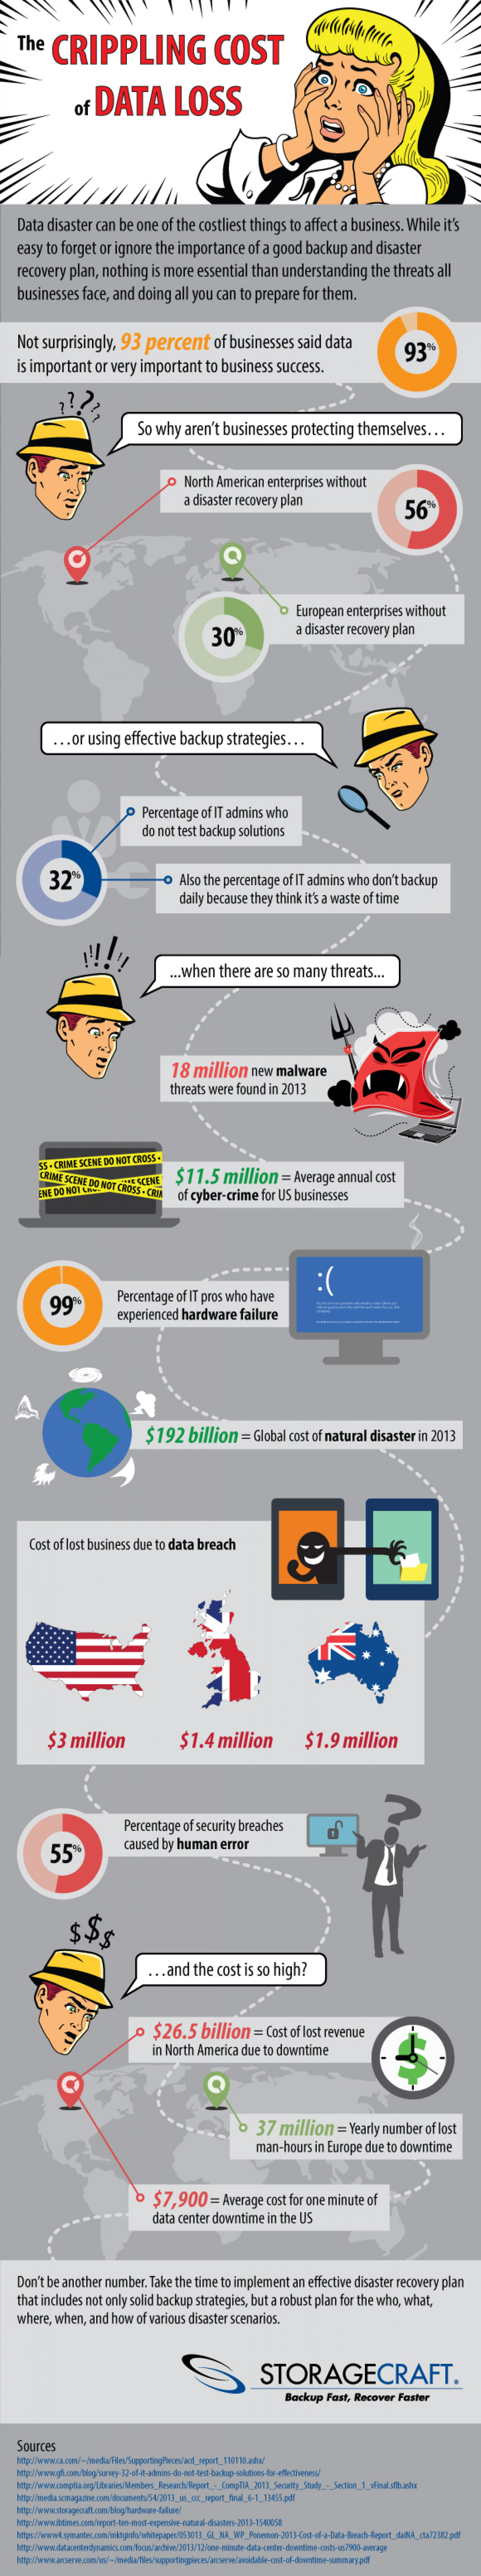 The Crippling Cost of Data Loss Infographic